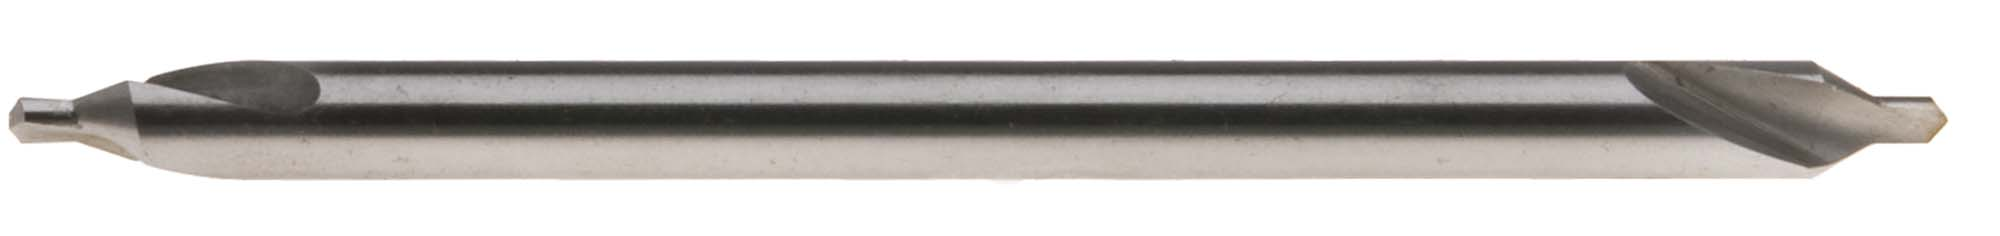 "CDL-7-6  #7 x 6"" Long Combined Drill and Countersink, High Speed Steel"